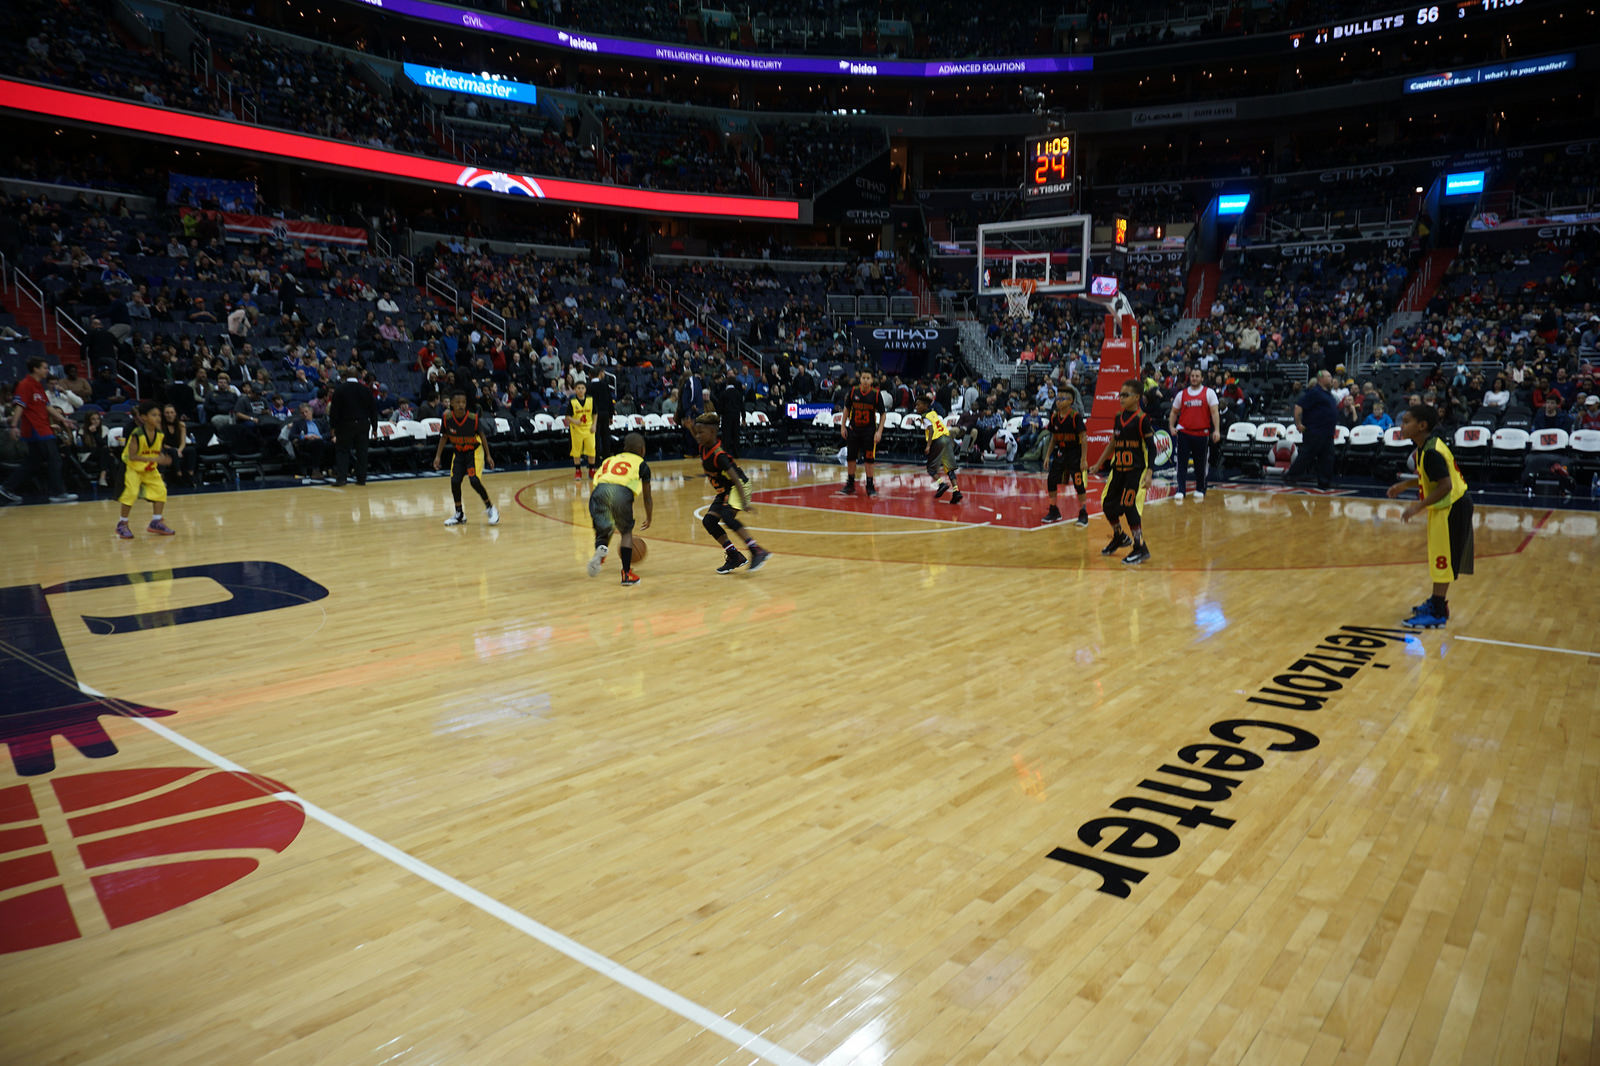 TFE's Midgets Halftime Showcase @ Verizon Center